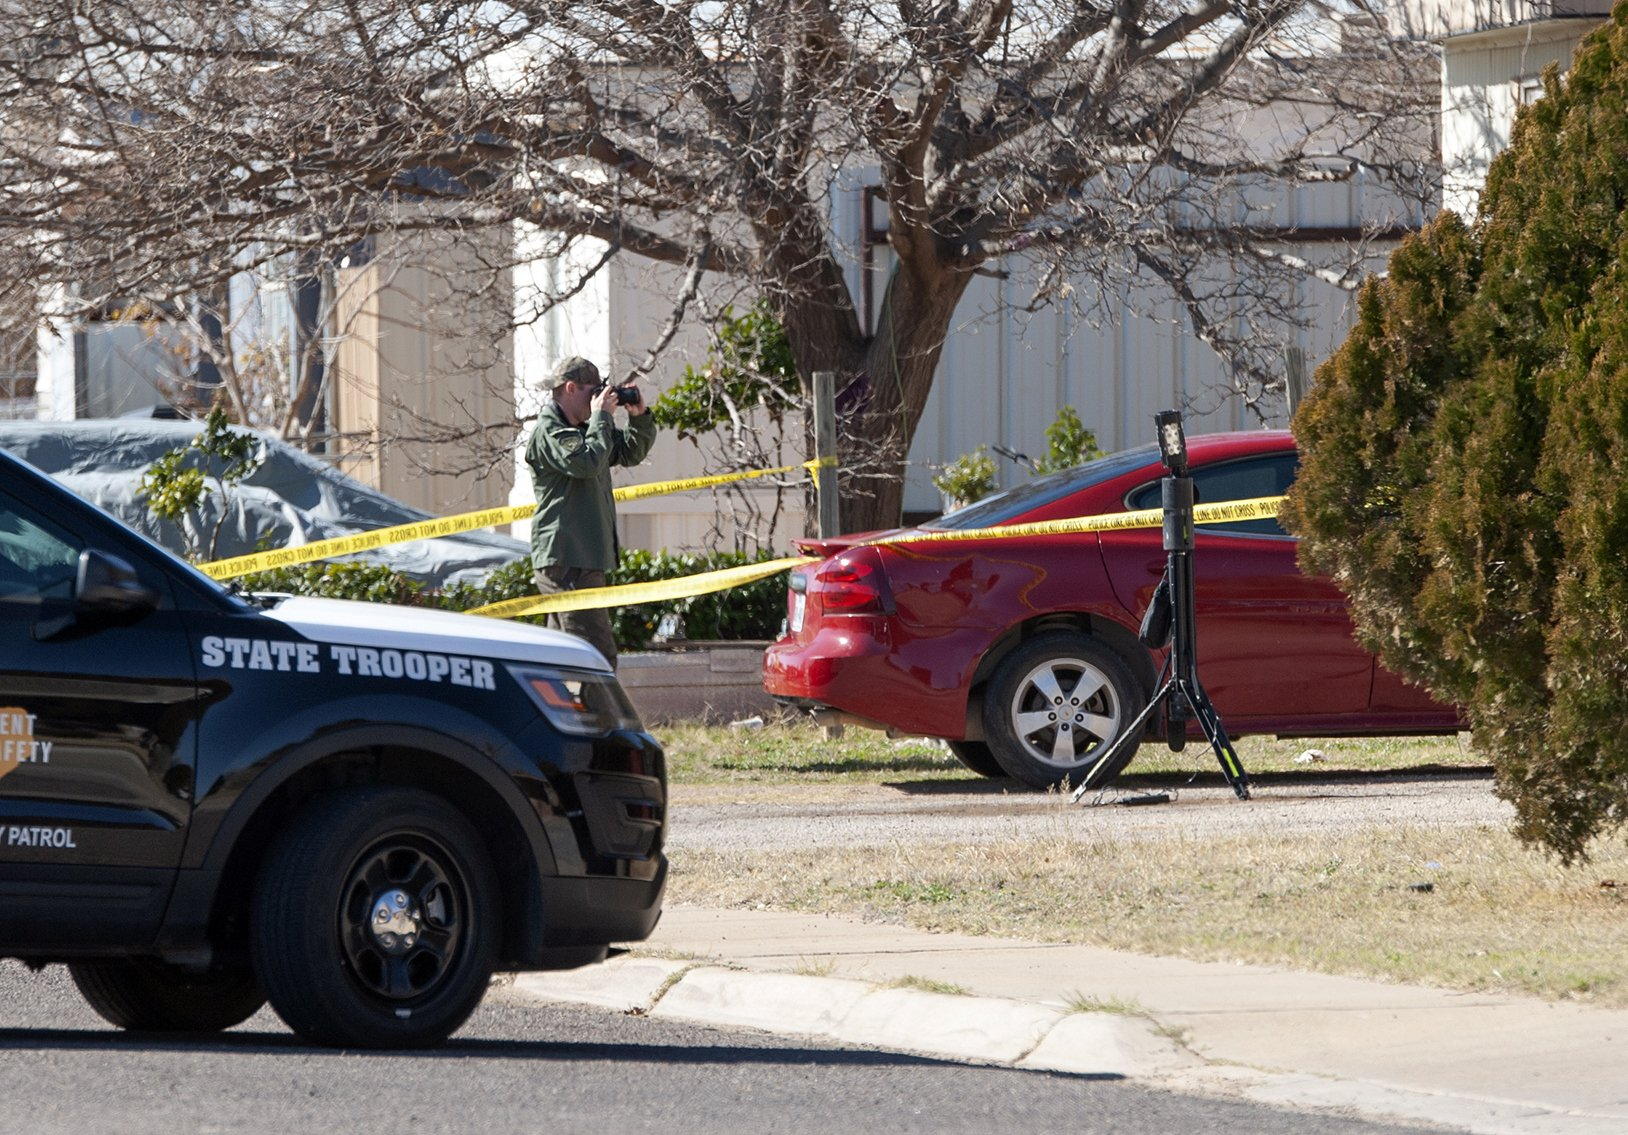 Texas man: Police shot, hurt 3-year-old daughter, teen son